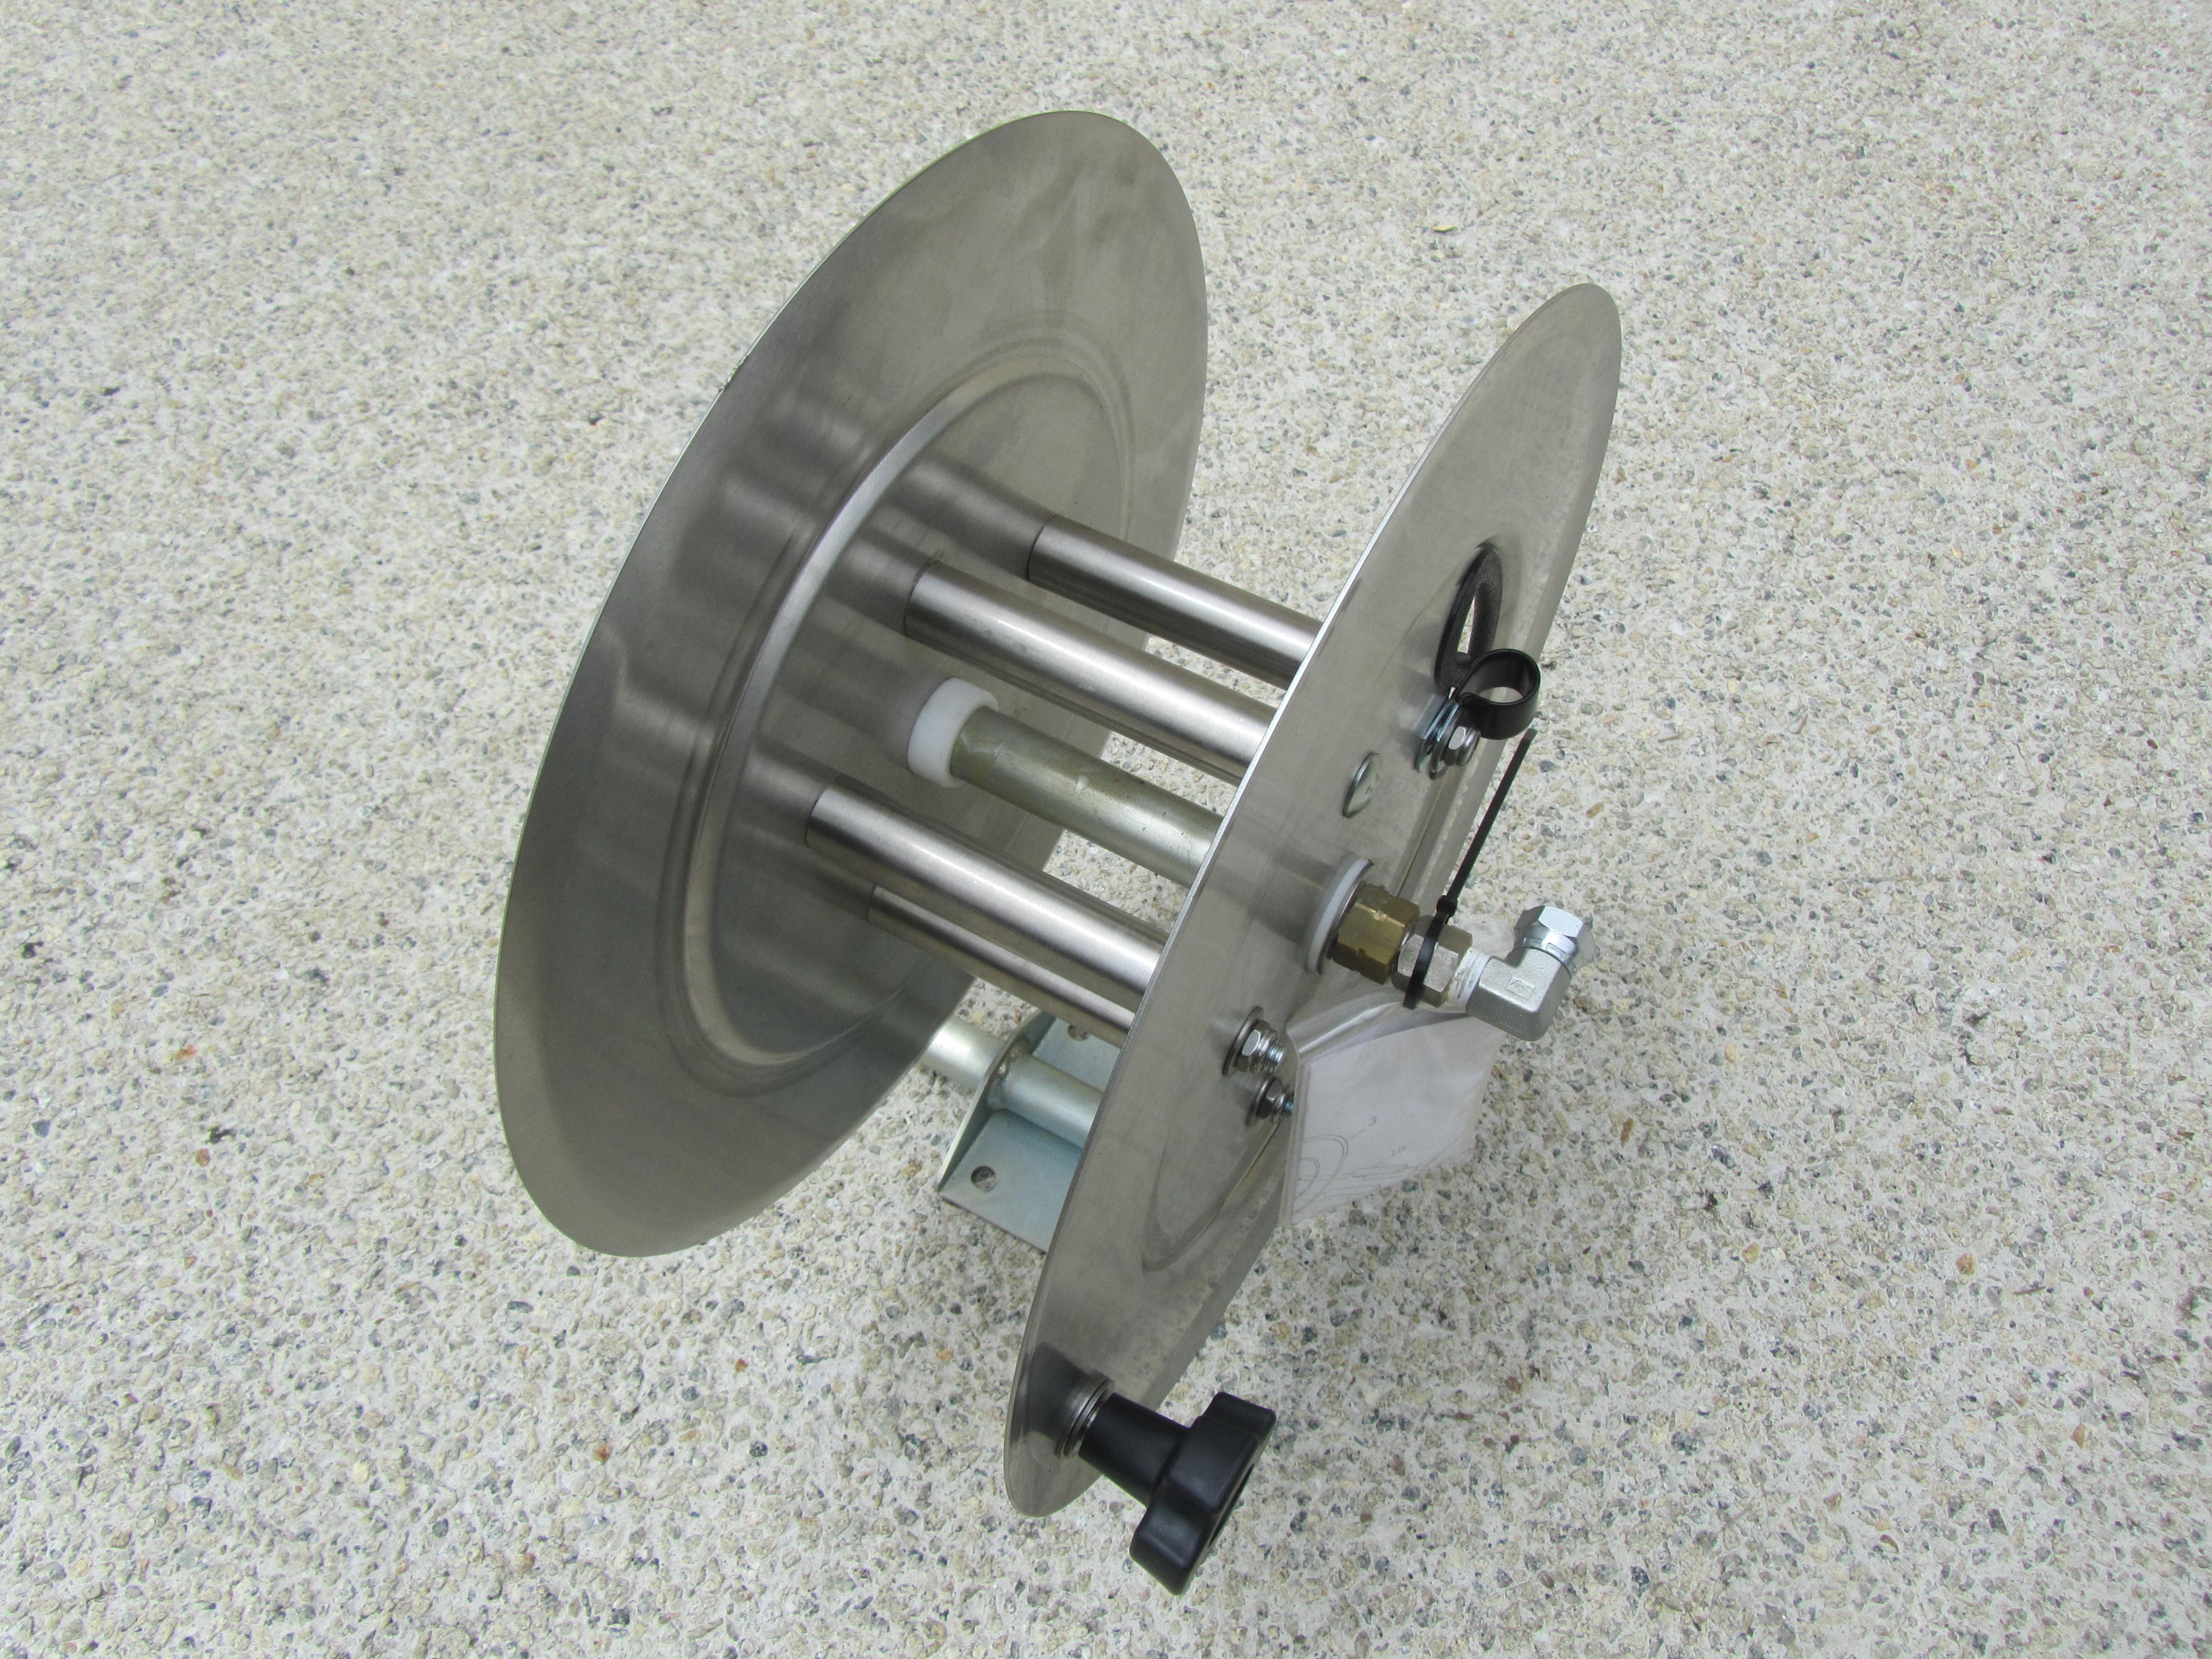 31 Metre Stainless Steel Hand Crank Pressure Hose Reel (Made In USA)